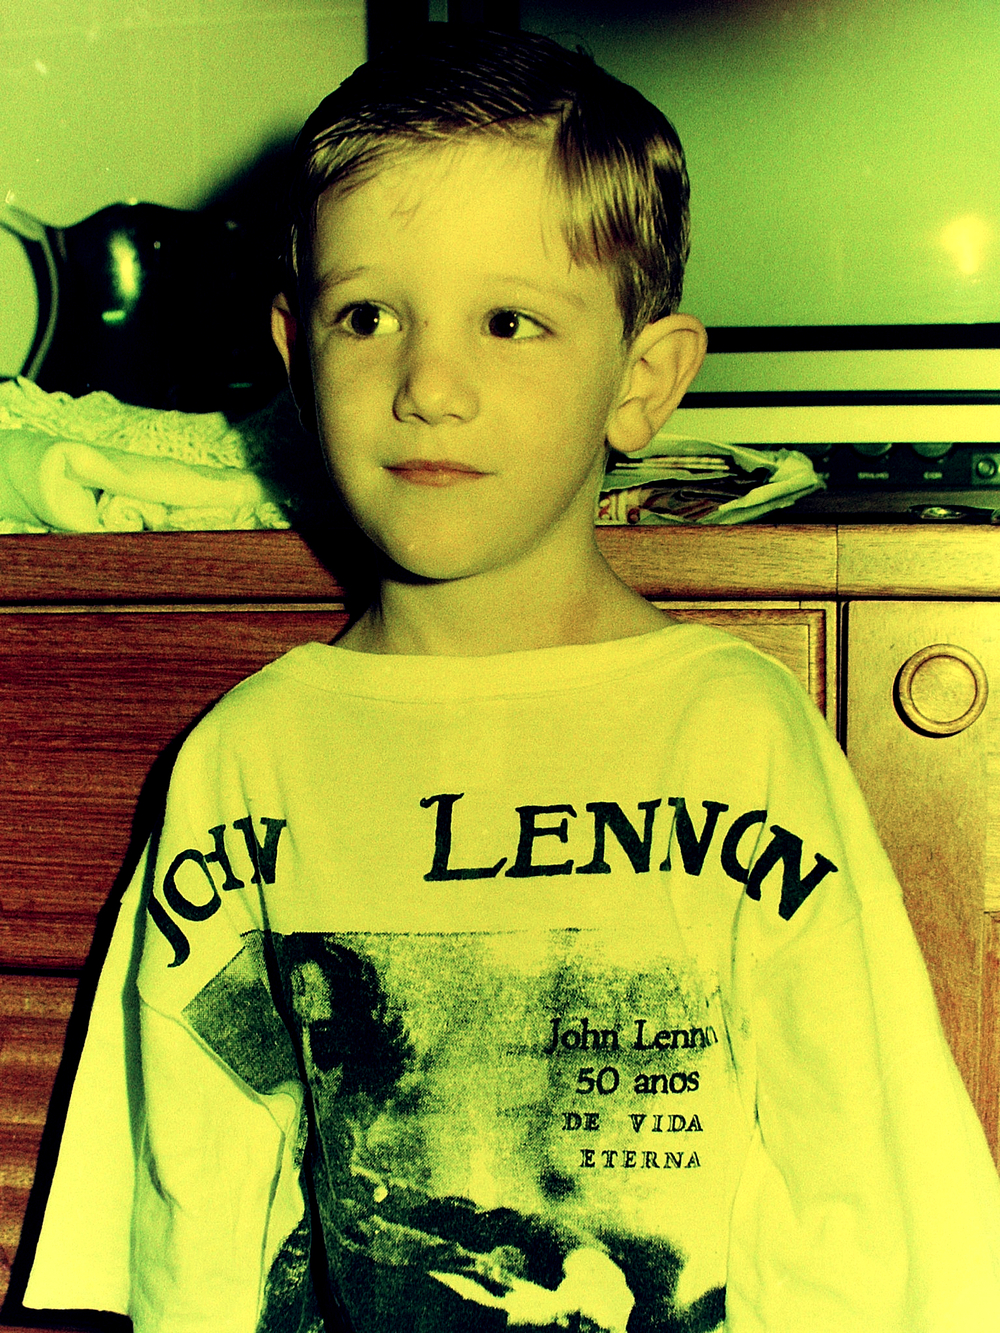 with his favorite t-shirt at 6 years old